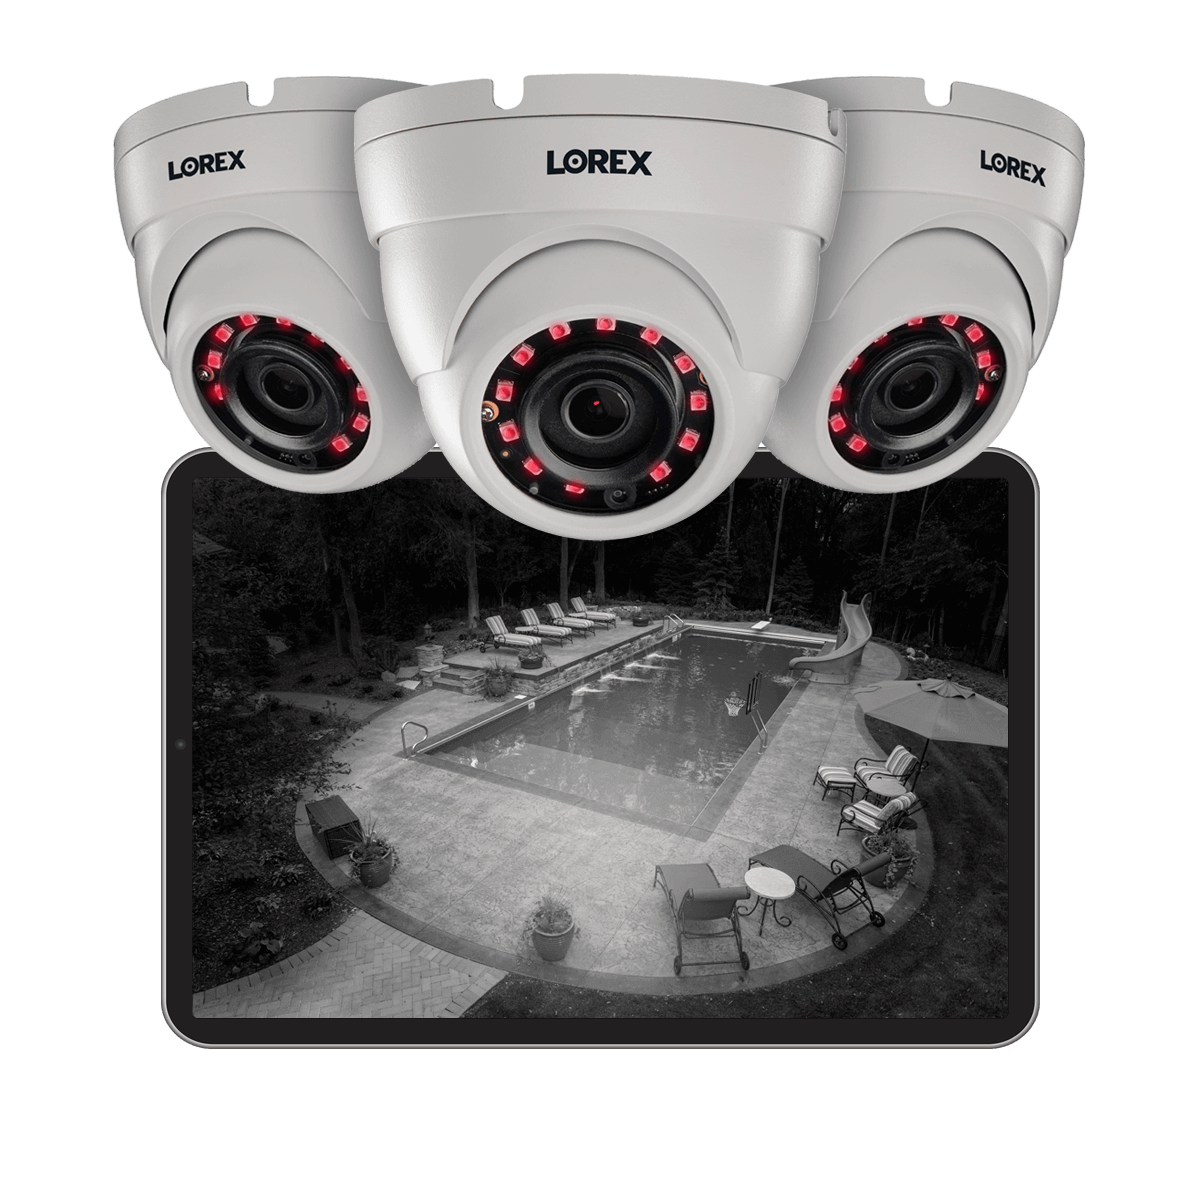 security cameras in high definition with night vision from Lorex